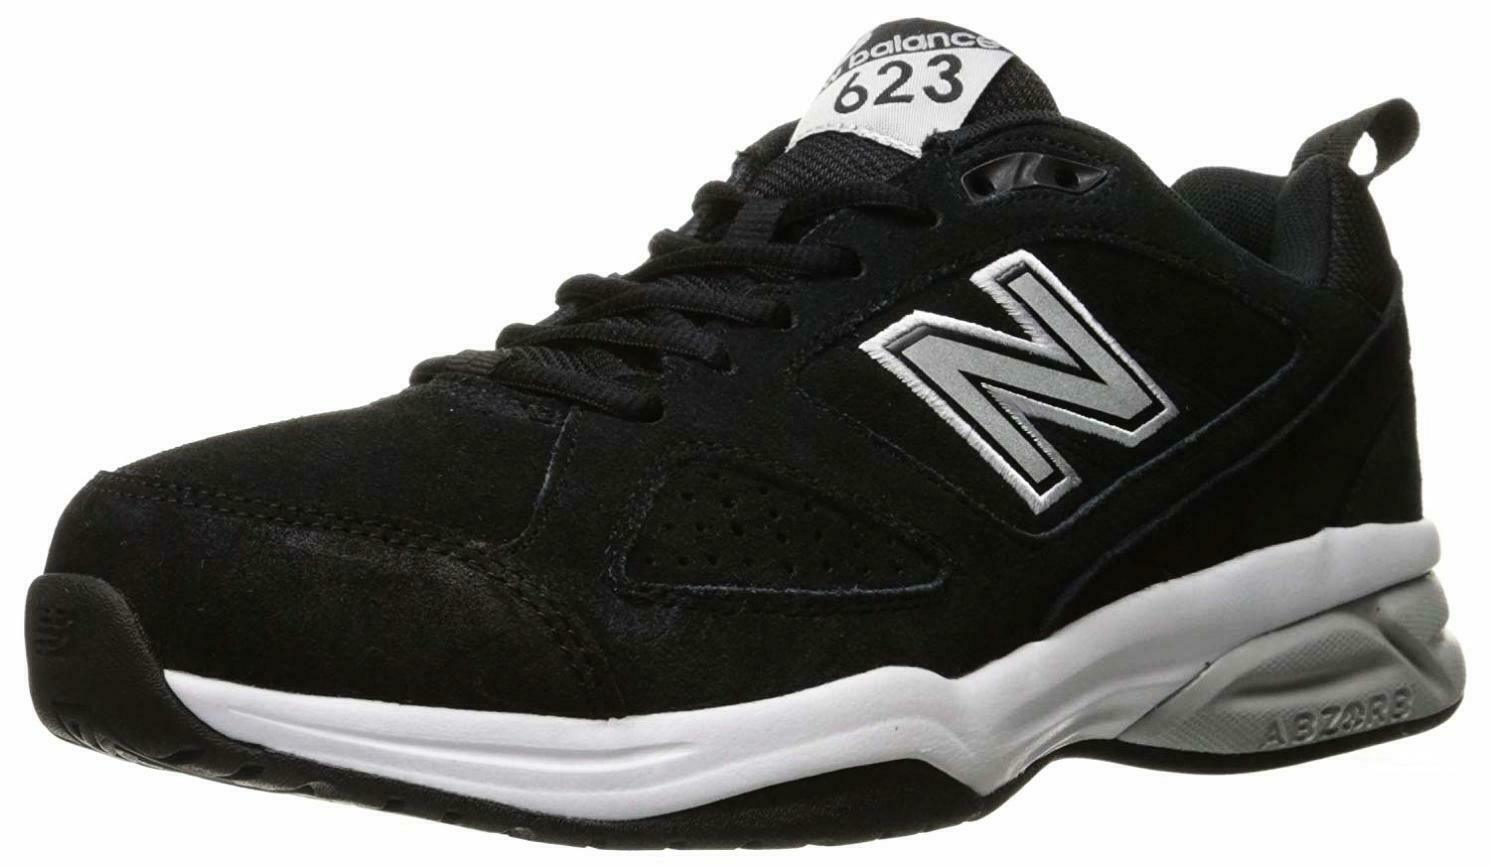 New Balance Men's Mx623v3 Training shoes